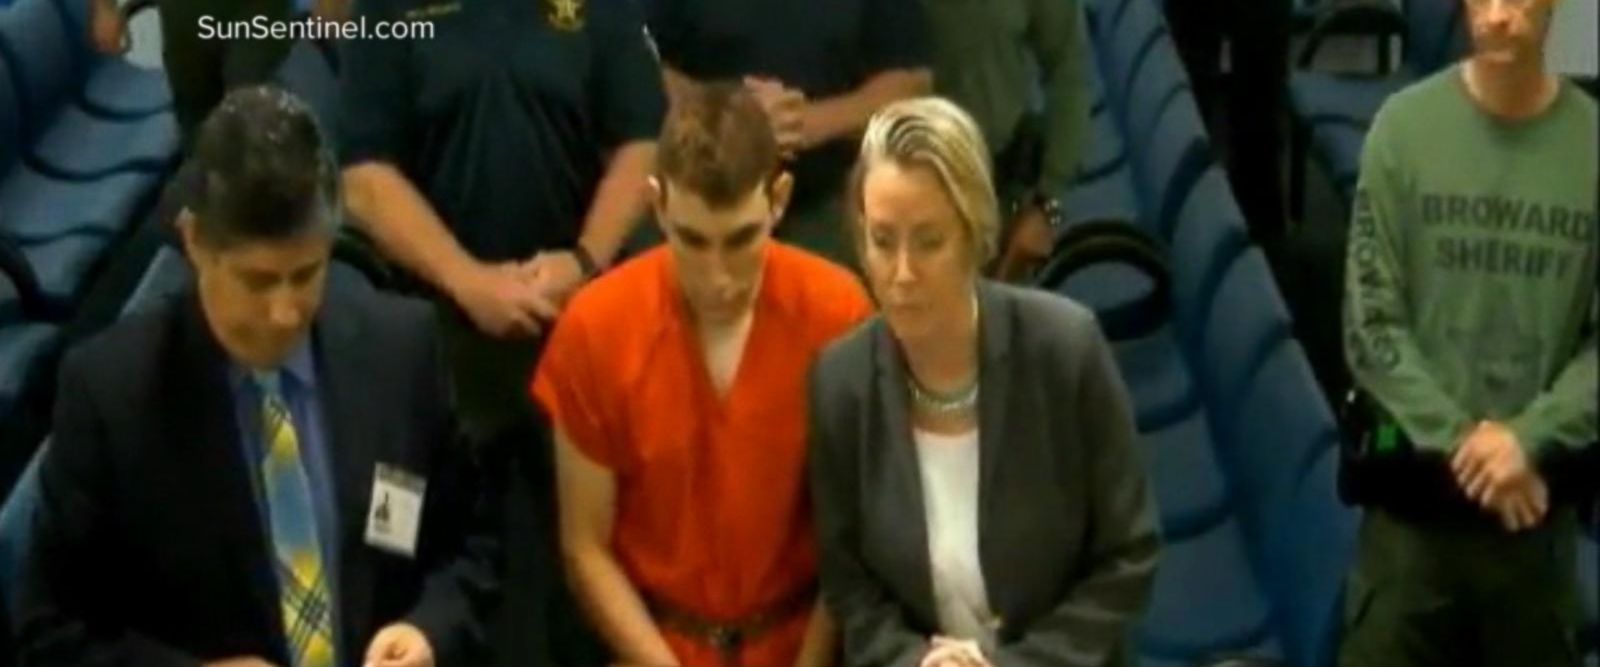 VIDEO: Attorneys for the alleged Parkland school shooter plead to avoid the death penalty